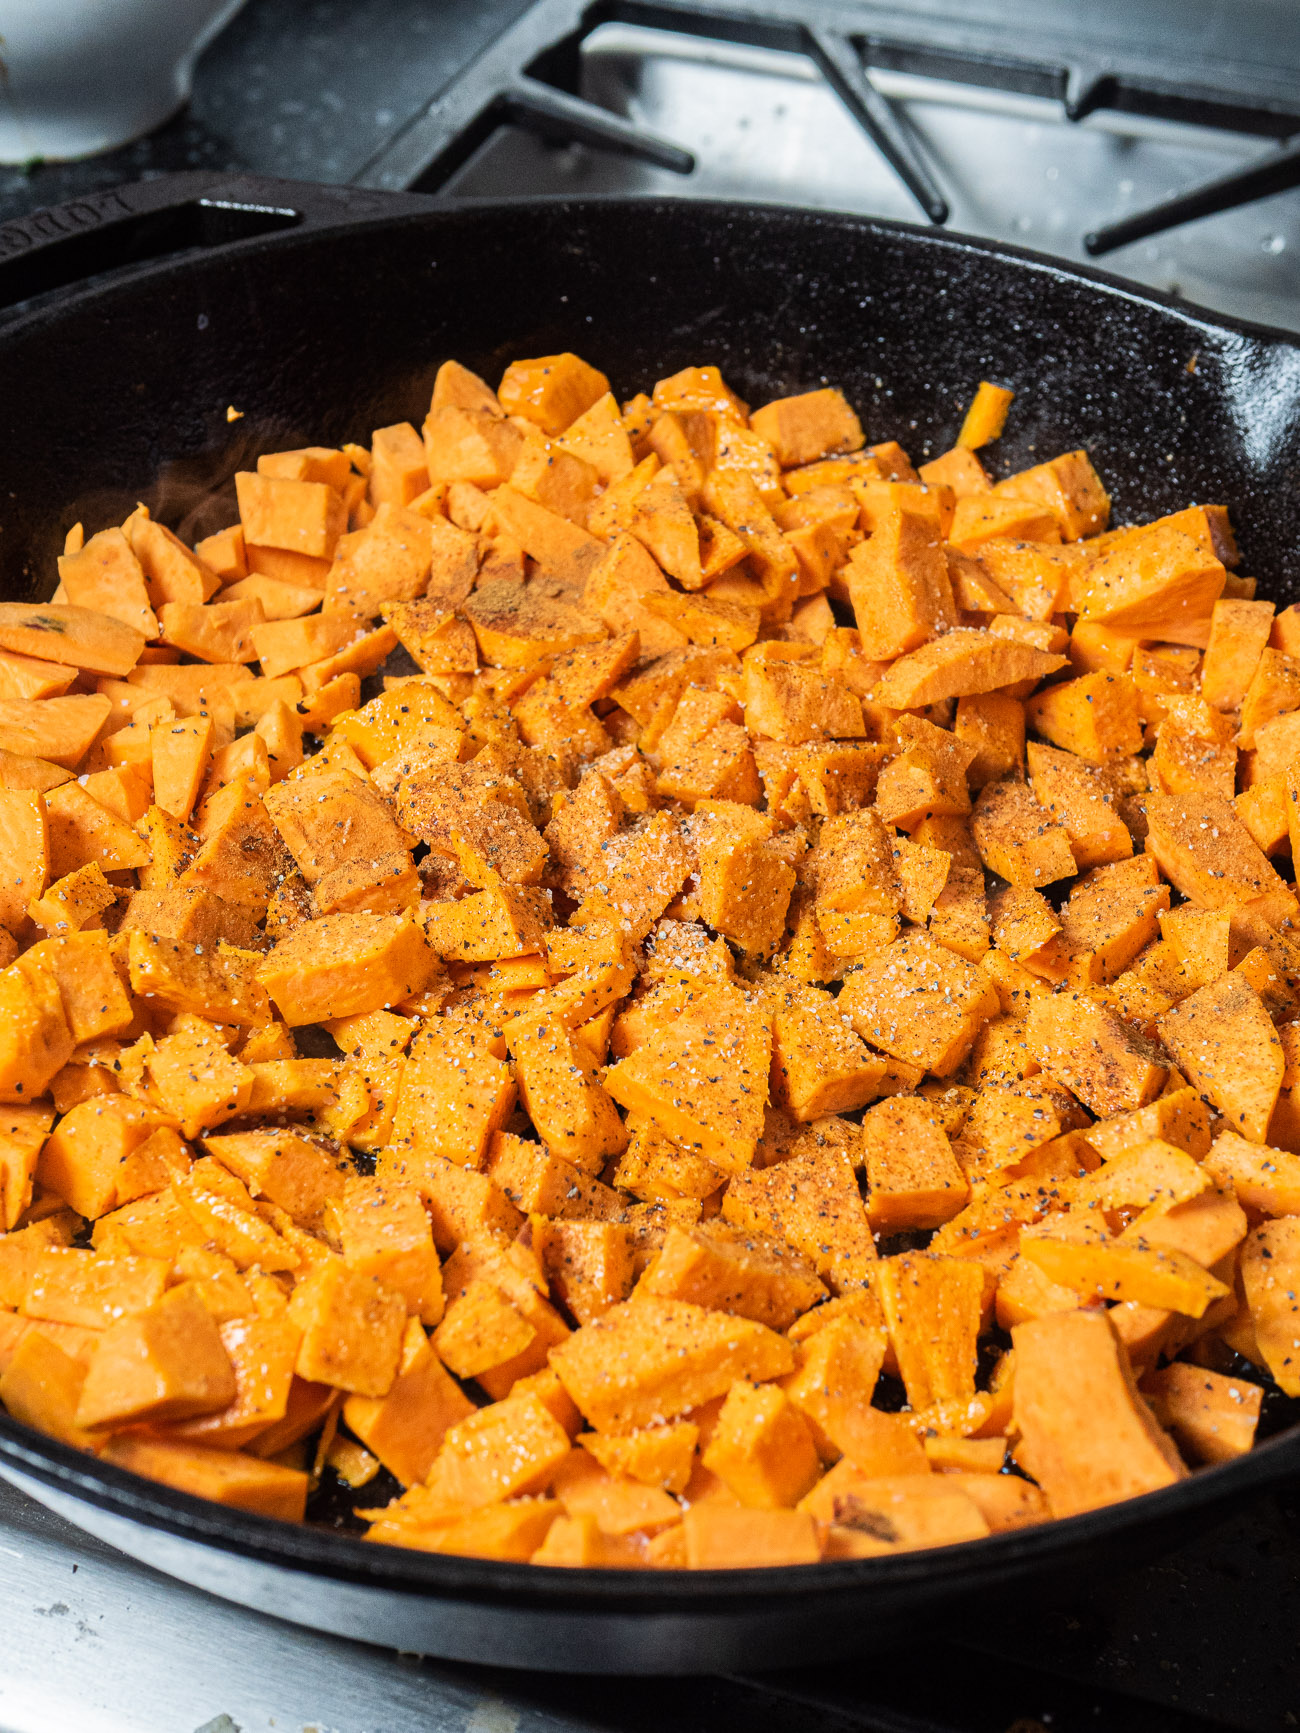 Add diced sweet potatoes to the skillet and sprinkle with cinnamon, salt, and pepper. Cook for 5 minutes before adding the diced green pepper and onion.